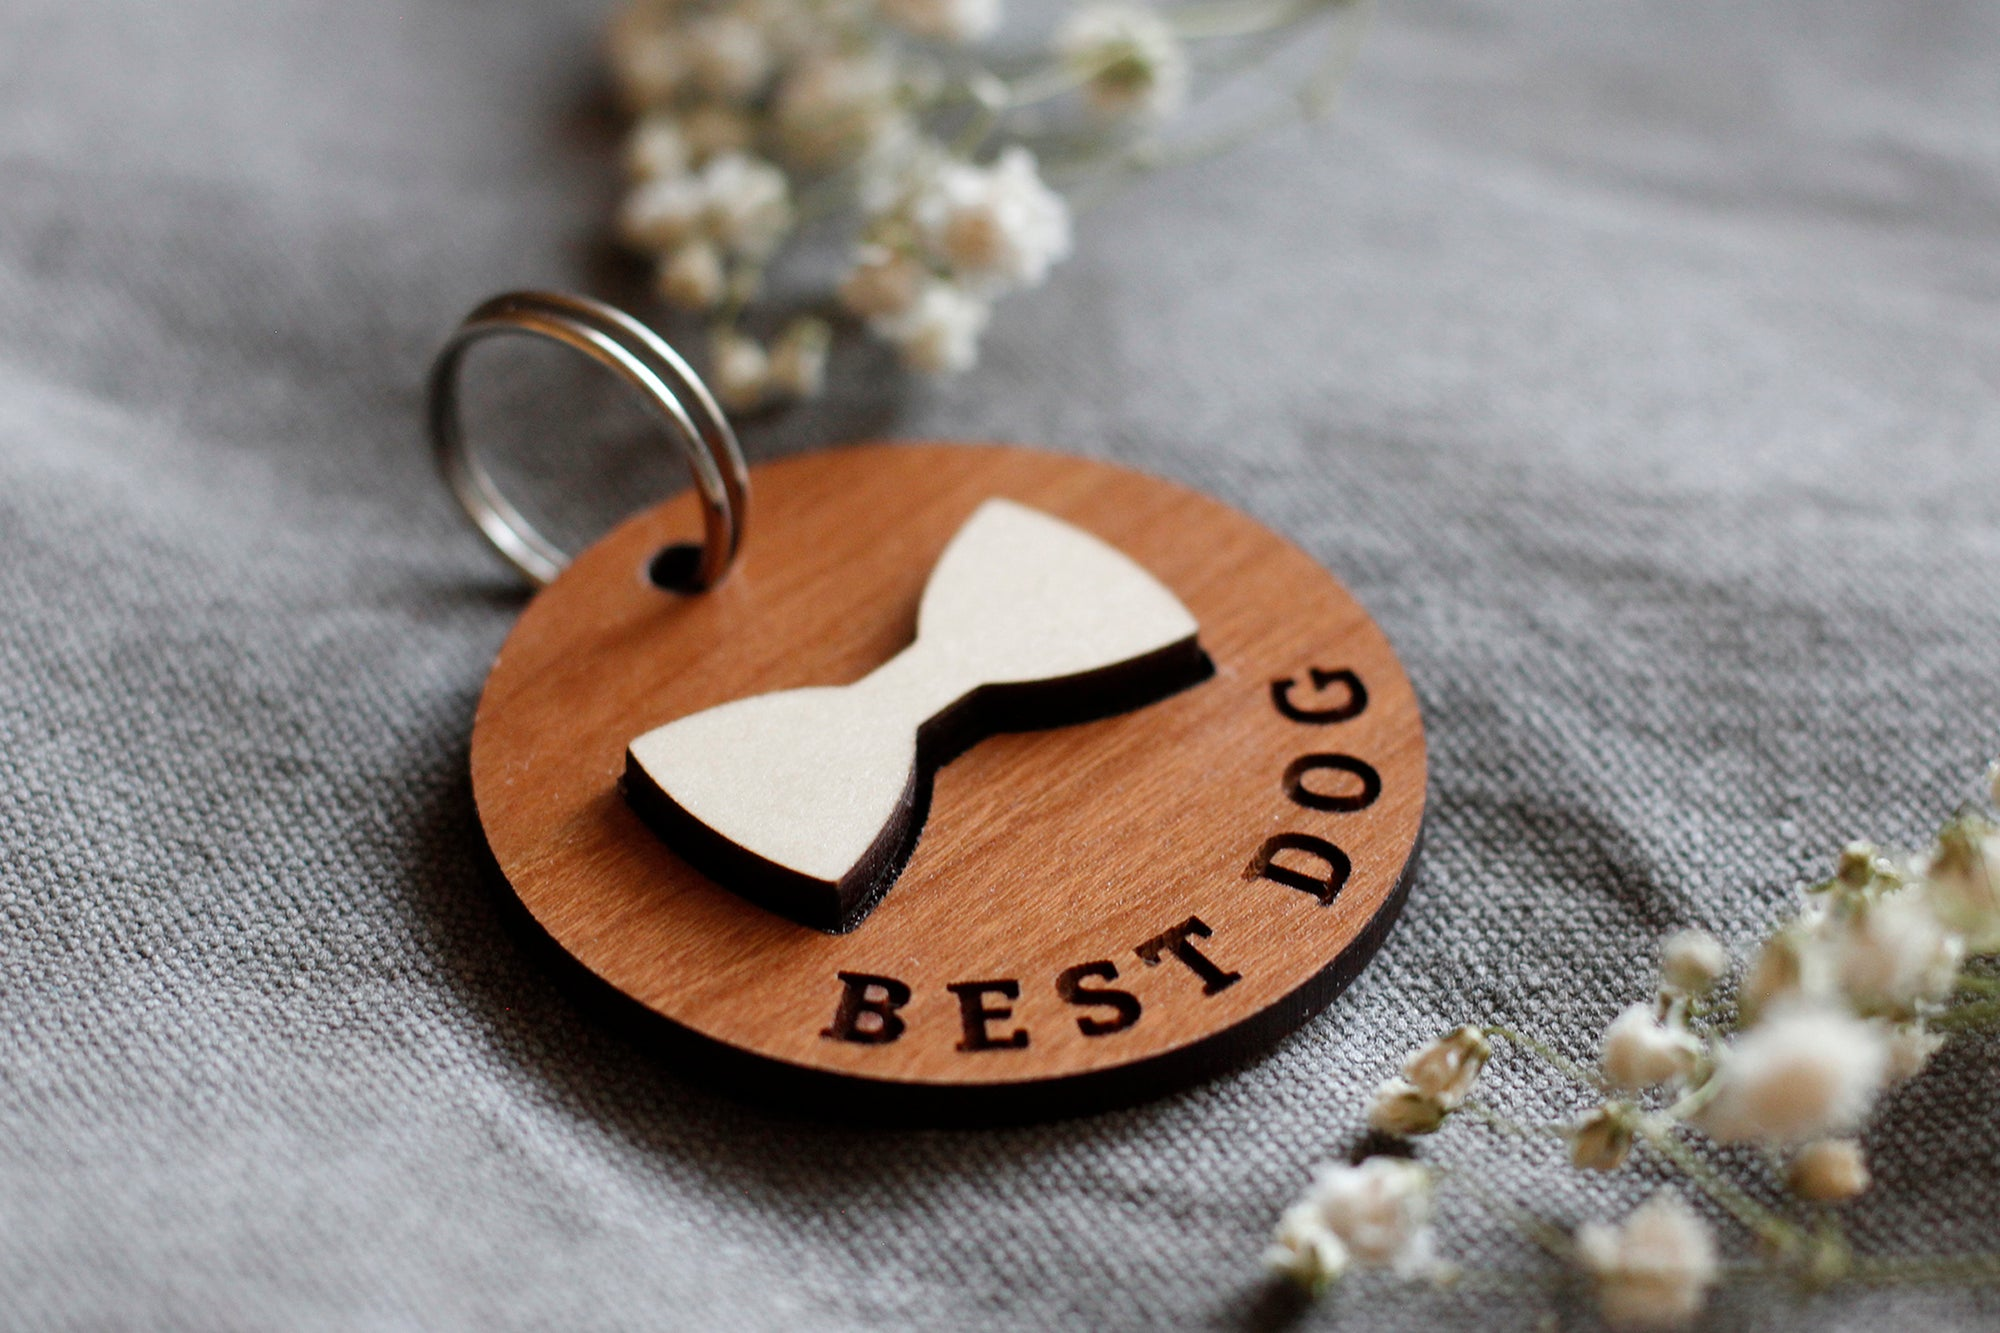 Best Dog Bow Tie Wooden Round Pet Tag